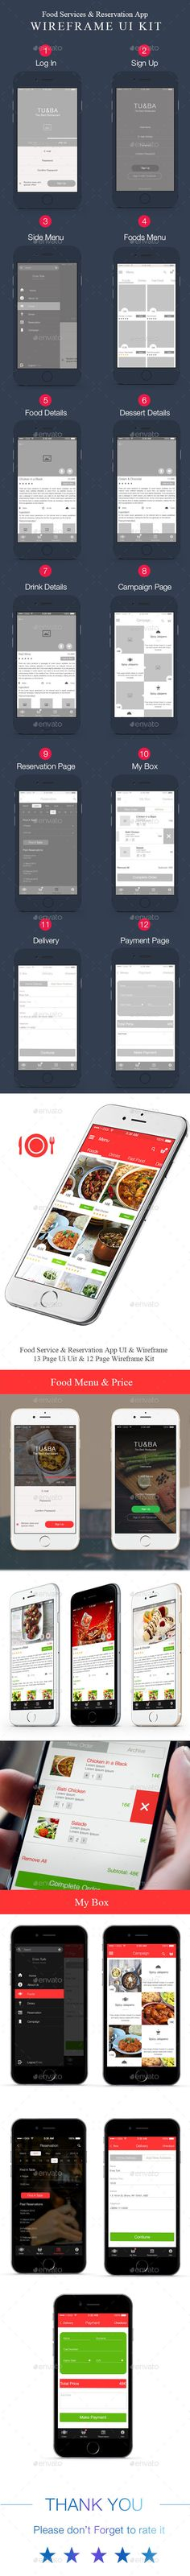 Food App User Interface & Wireframe Kit Template PSD #design #ui Download: http://graphicriver.net/item/food-app-ui-wireframe-kit/13305829?ref=ksioks